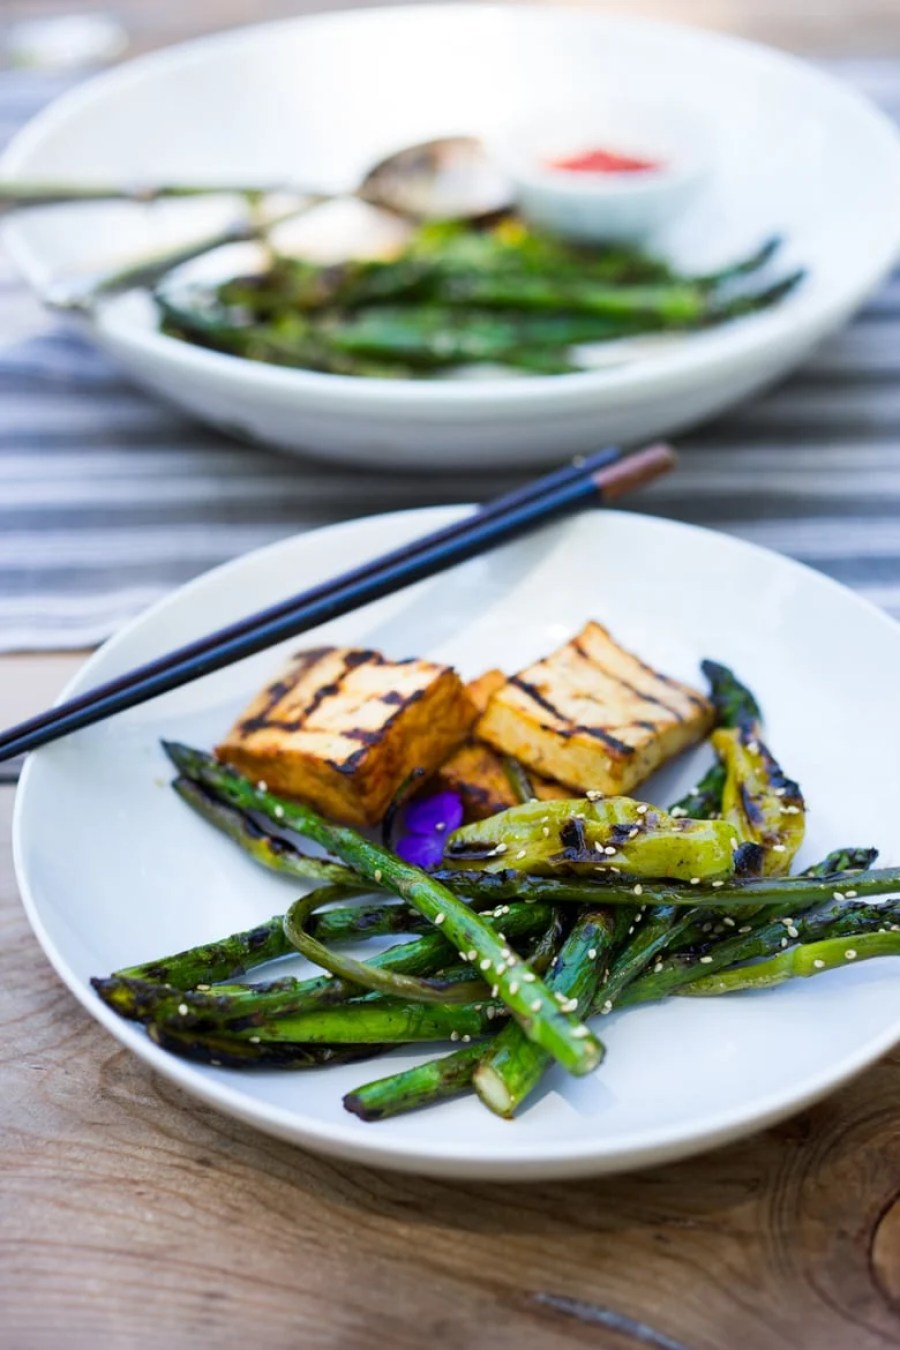 Grilled Garlic Scapes, Asparagus and Shishito Peppers with Sesame - a vegan, gluten-free adaptable side dish, perfect for summer! | www.feastingathome.com